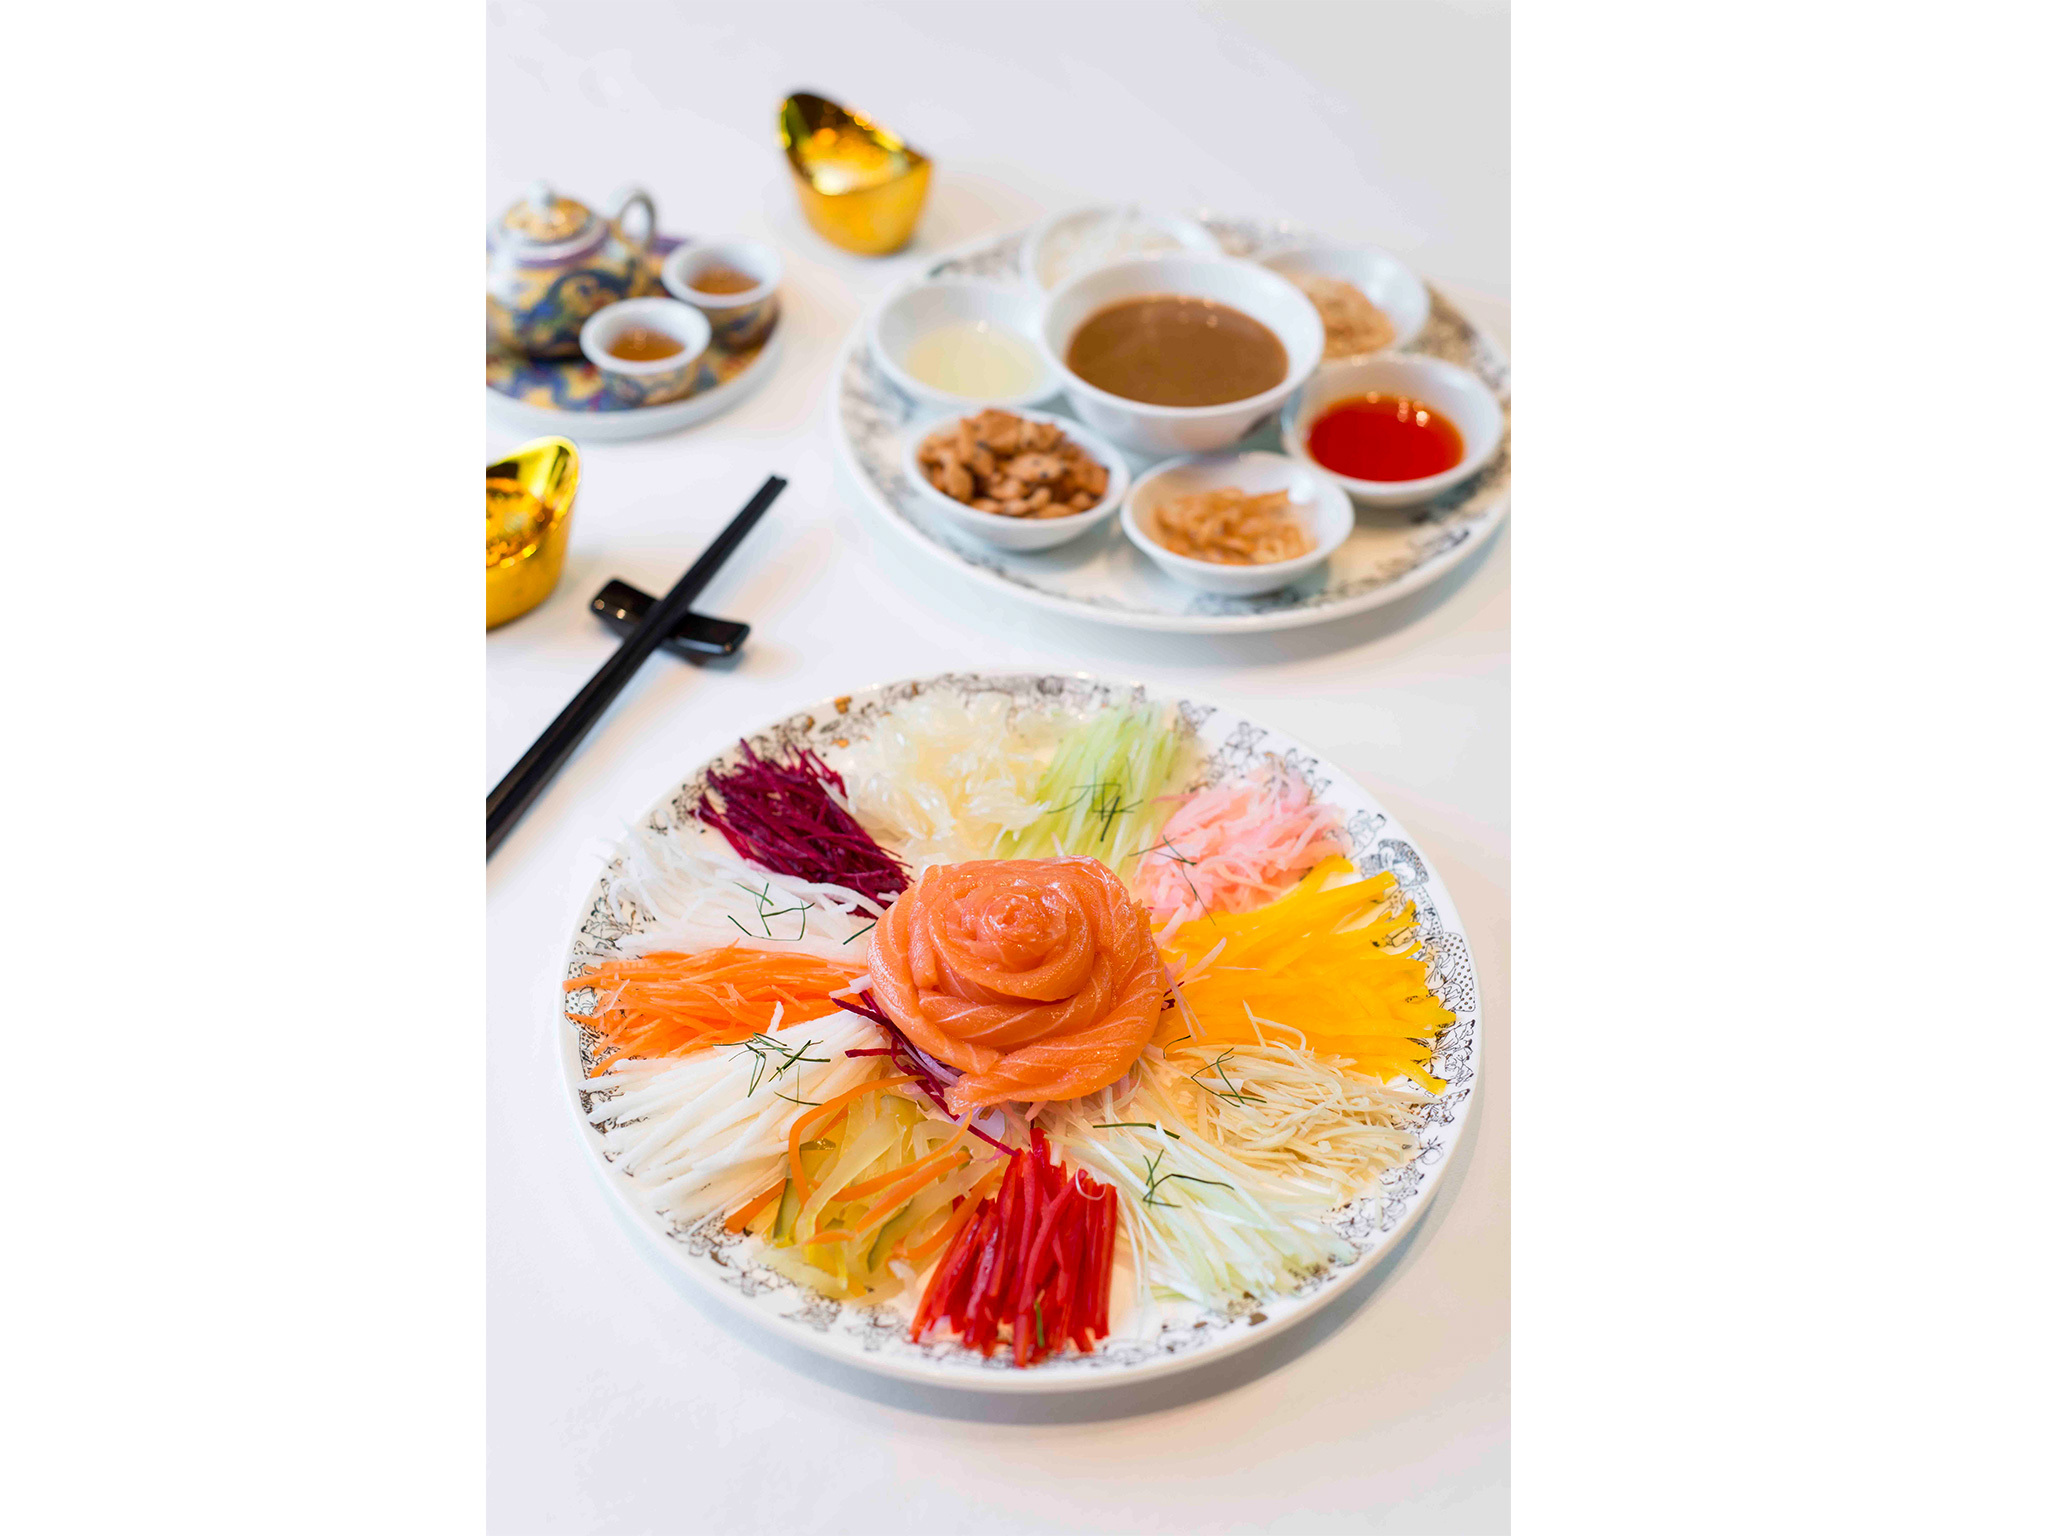 The best restaurants to celebrate Chinese New Year in Bangkok